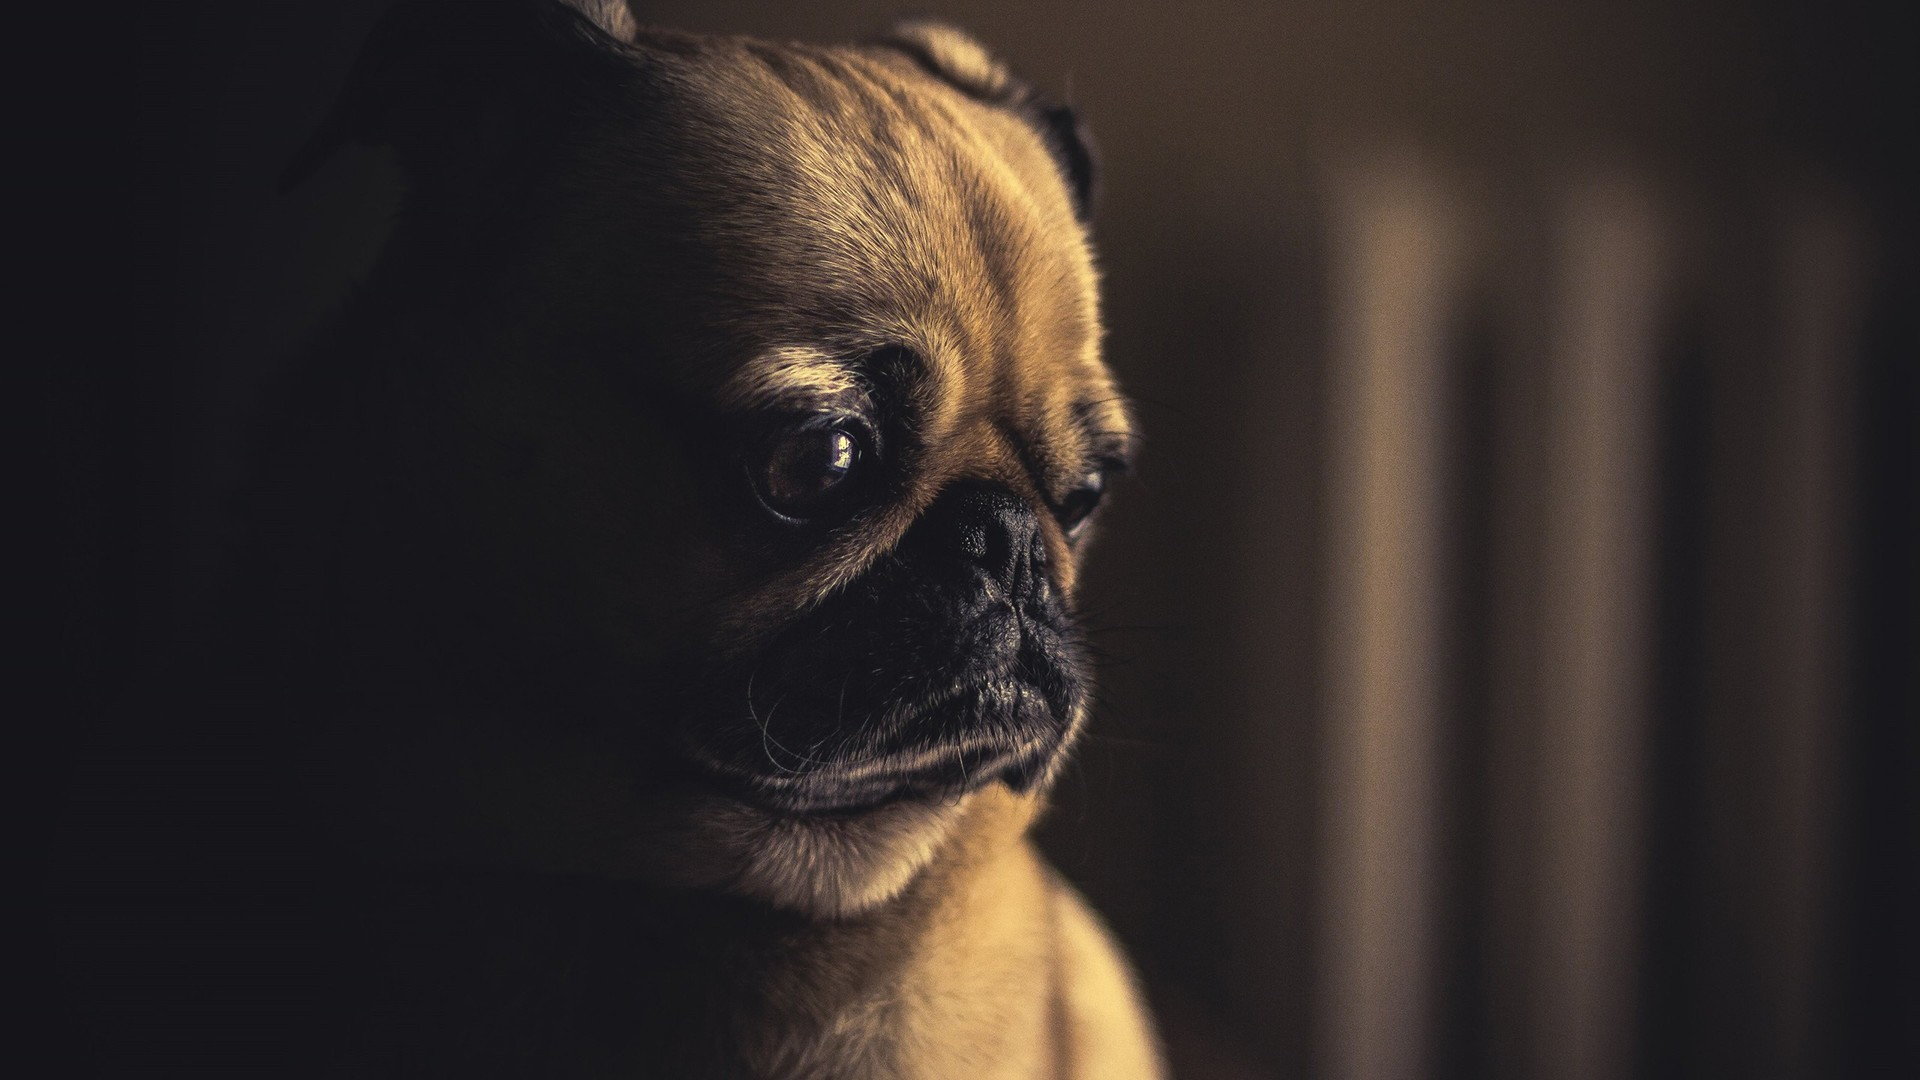 1920x1080 Pug Desktop HD Wallpaper 10420